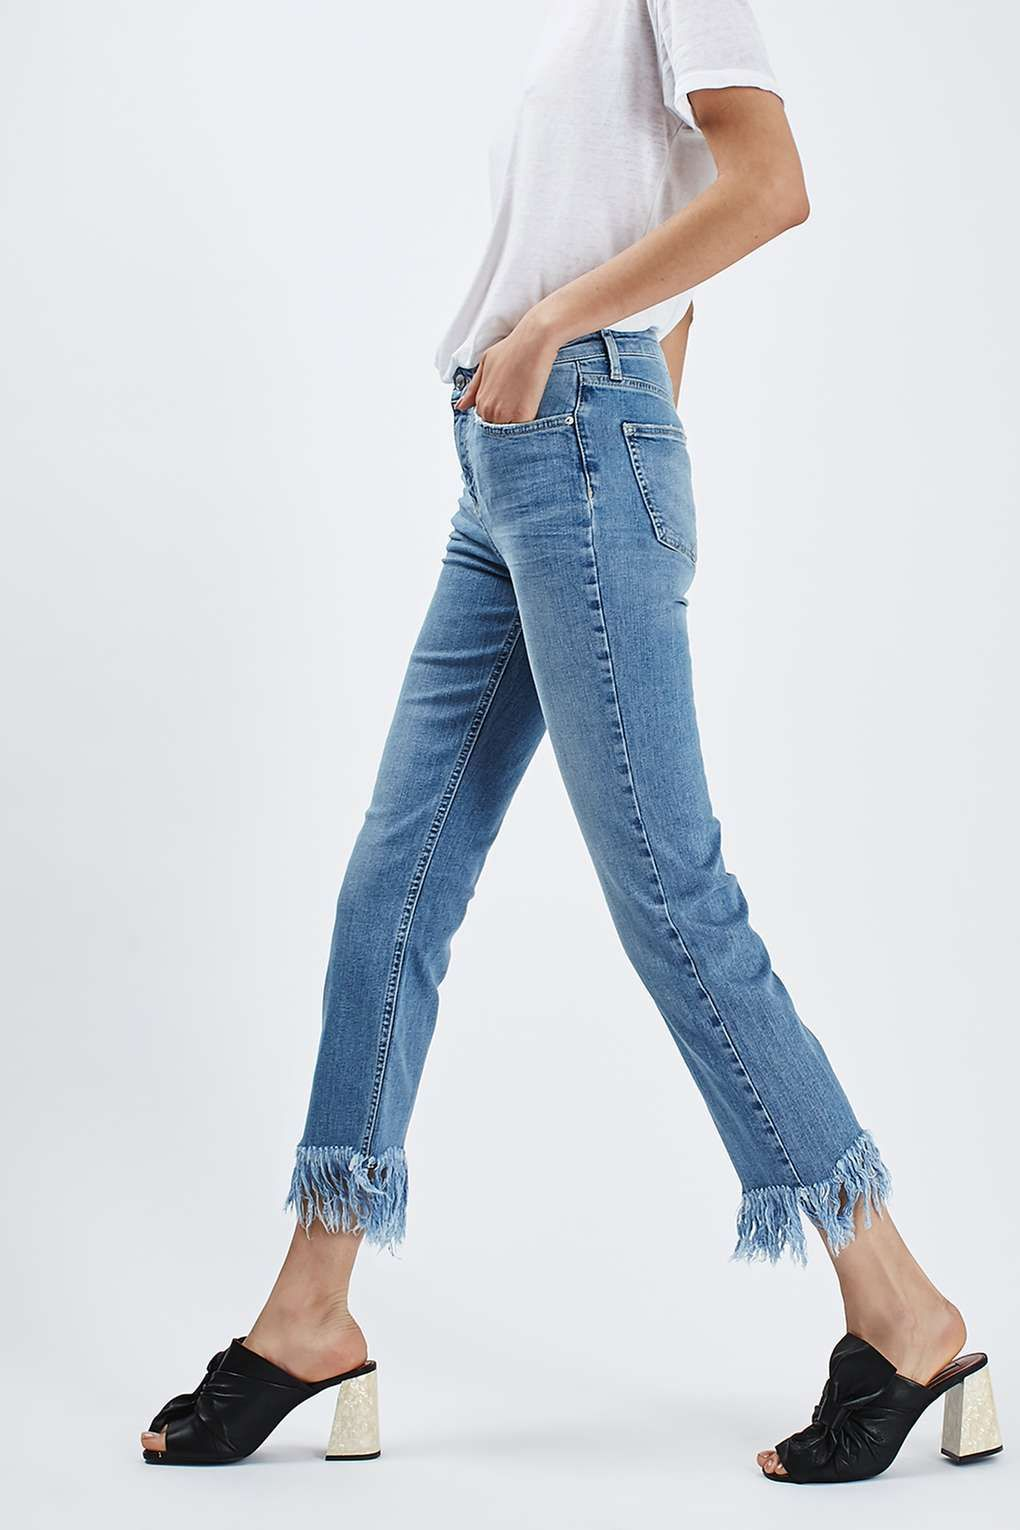 f15bd67e49edfb 22 Best How to Style Fringe Jeans | clothes | Jeans, Fringe hem ...